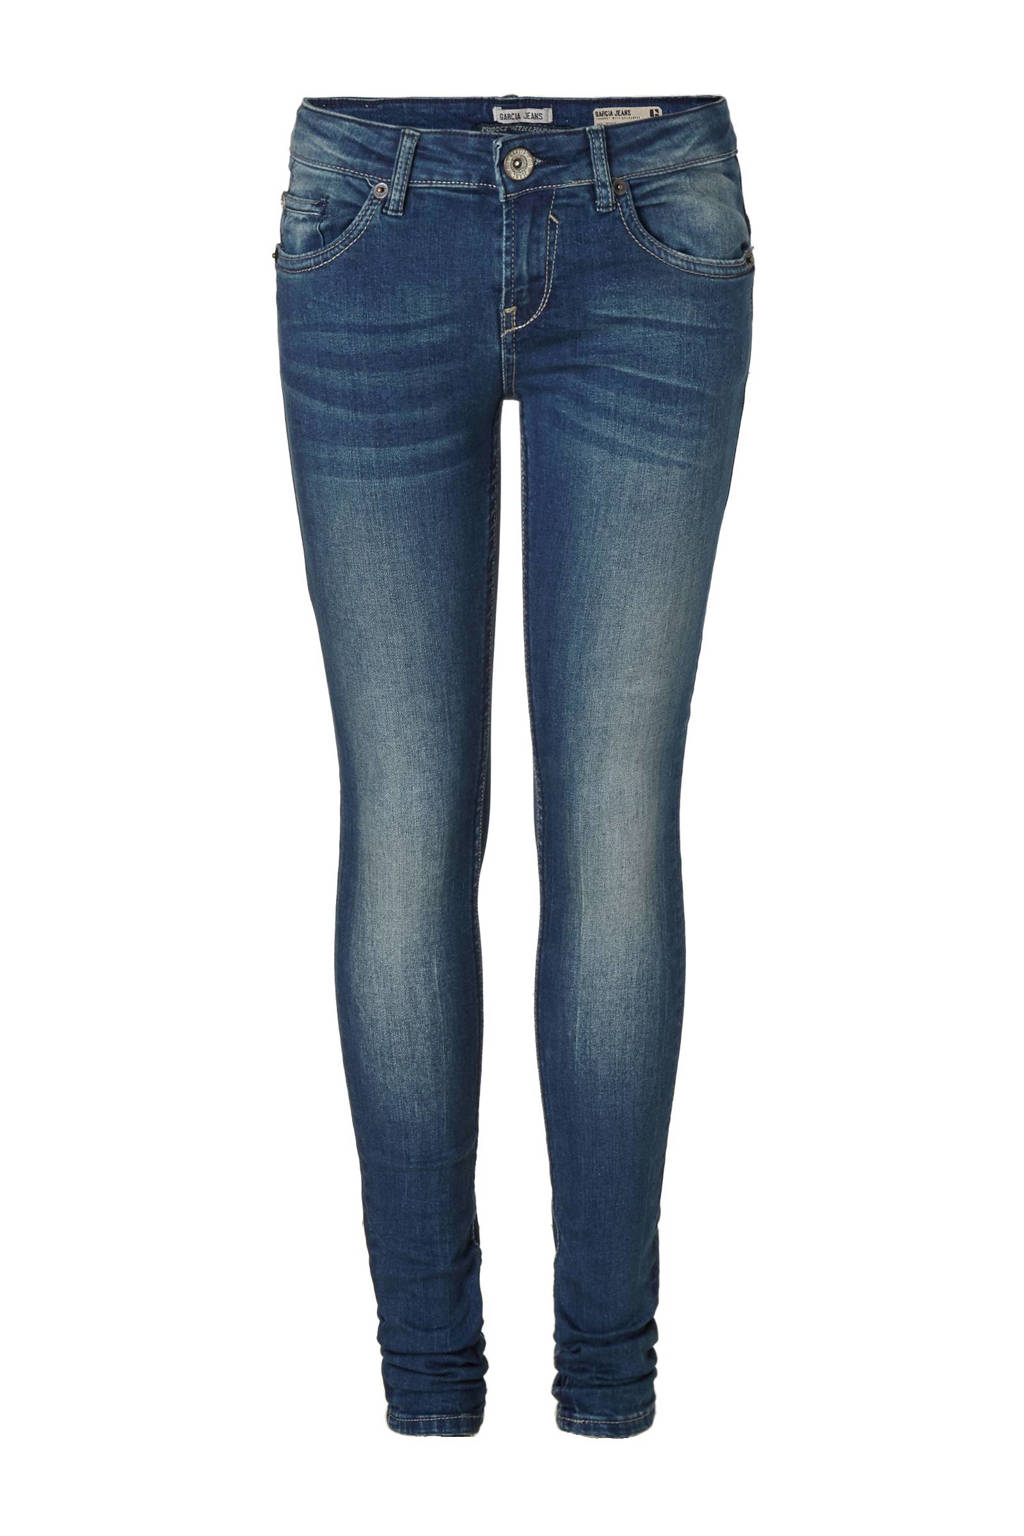 Garcia Sara superslim fit jeans, Bright night